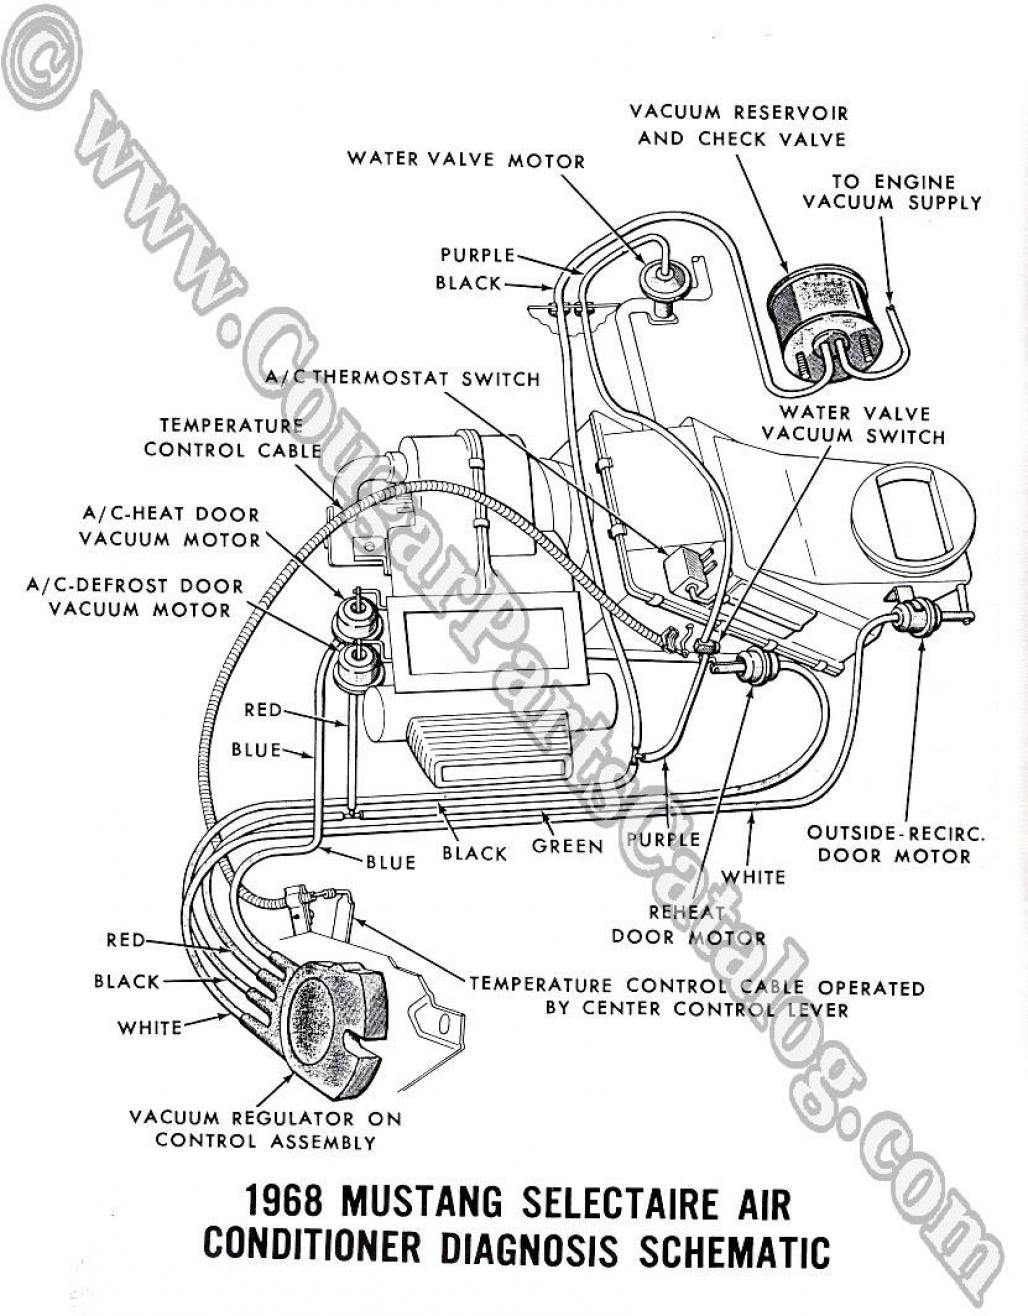 Mustang diagrams of engine compartment fuse box, i will